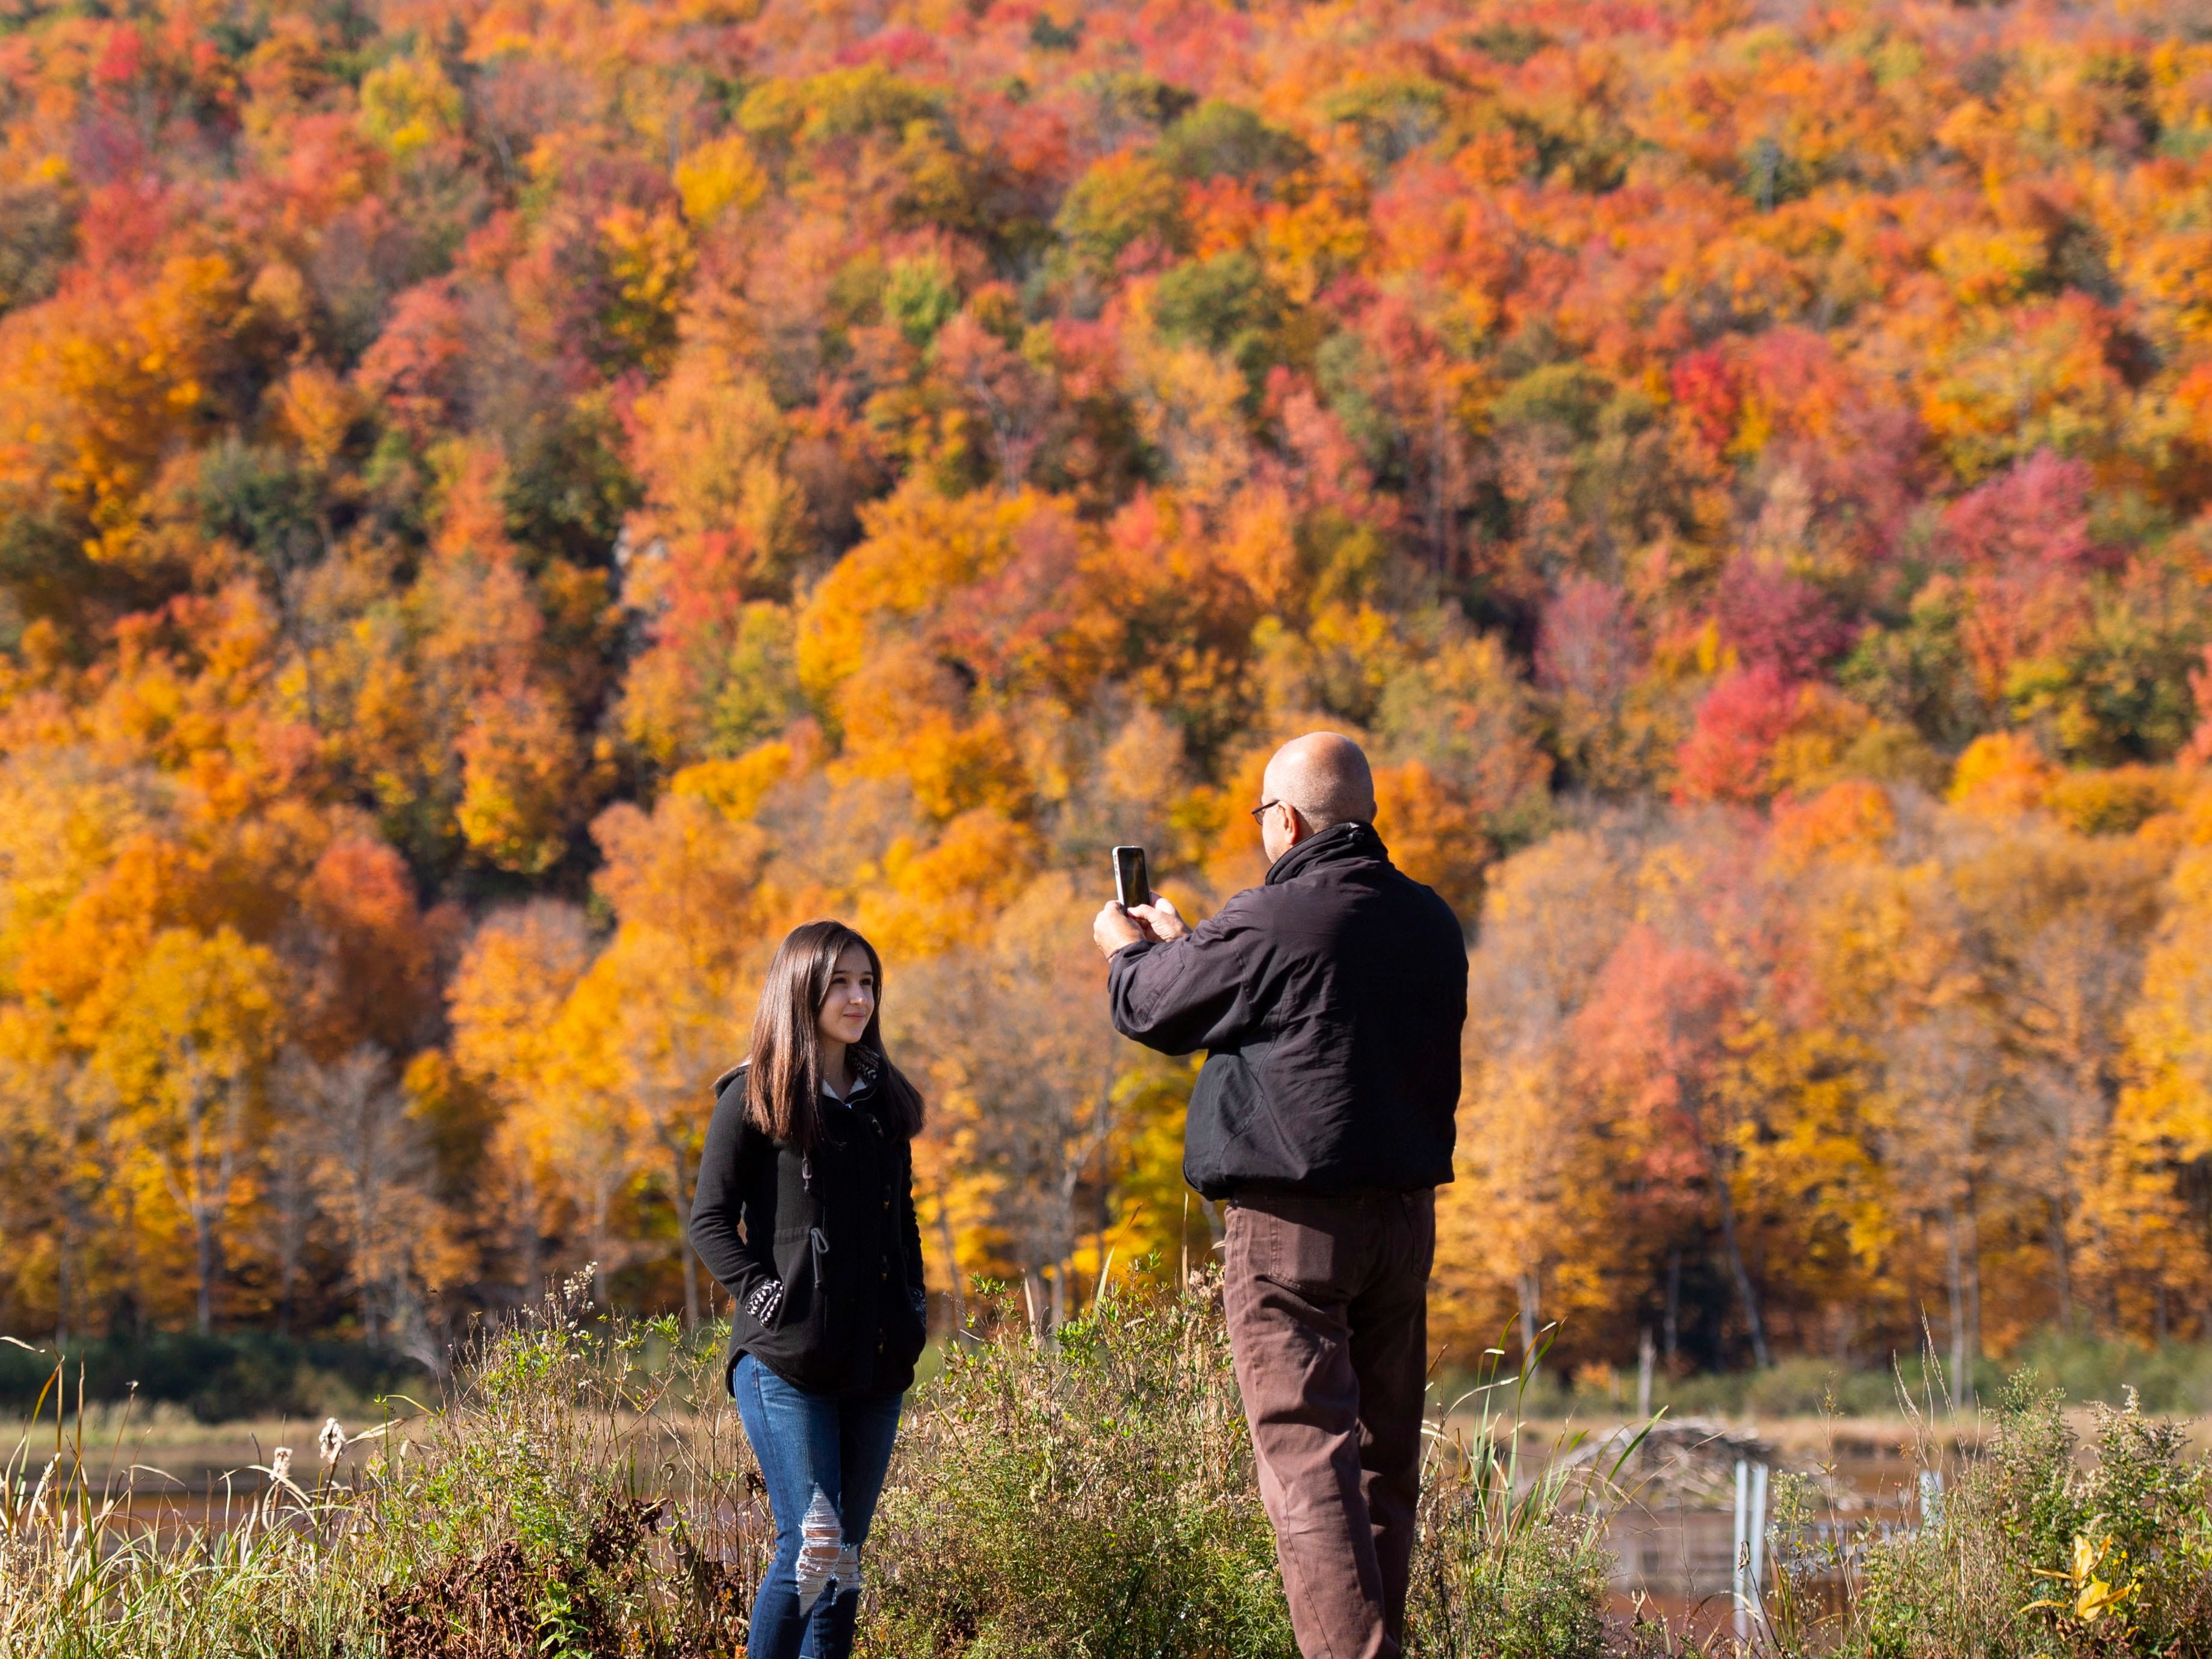 Essie Khossravi takes a photo of his daughter Nika, 14, as they take in the fall colors in Gatineau Park in Chelsea, Quebec, on Sunday, Oct. 14, 2018.